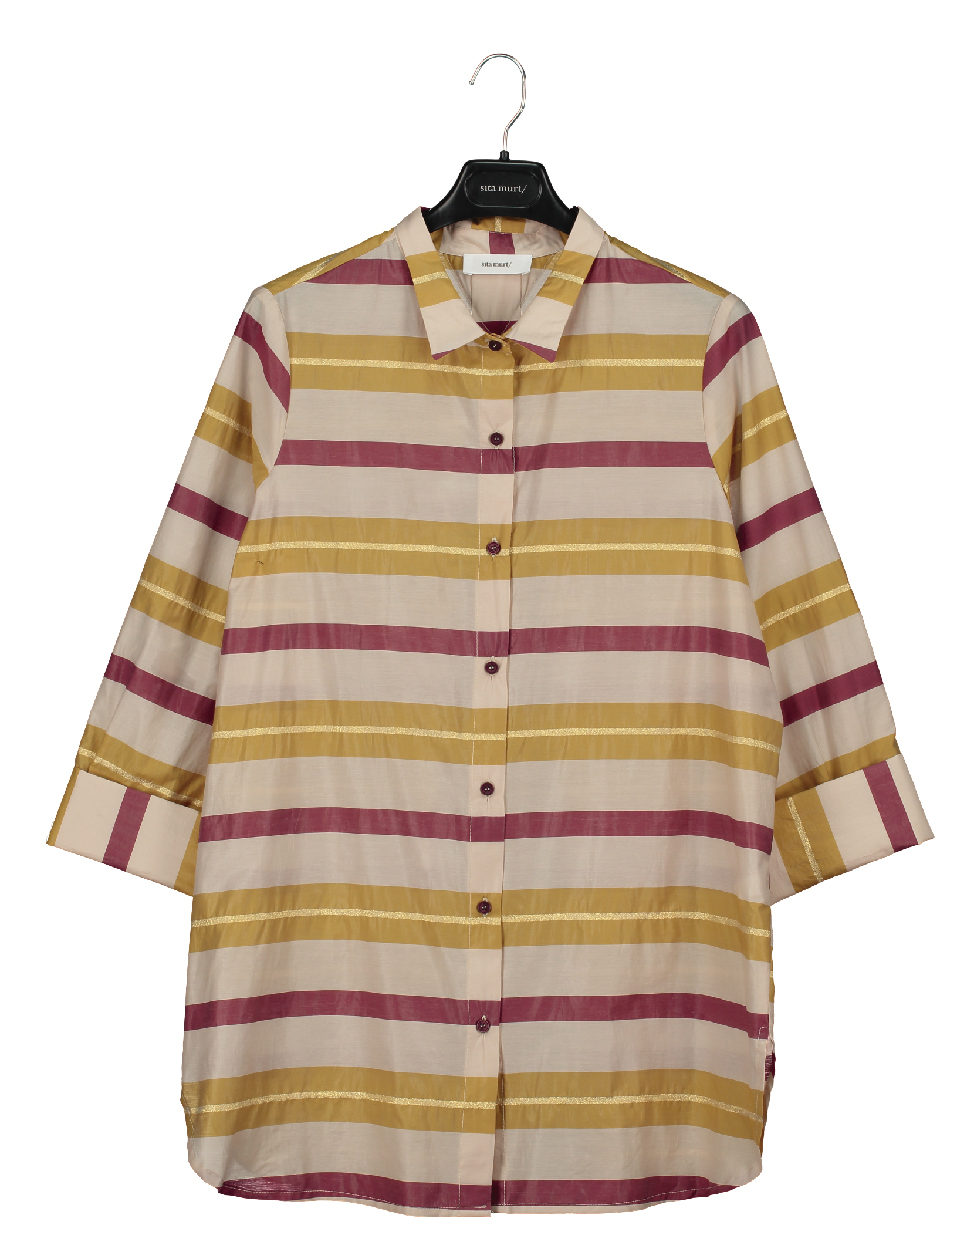 Shirt with contrasted stripes